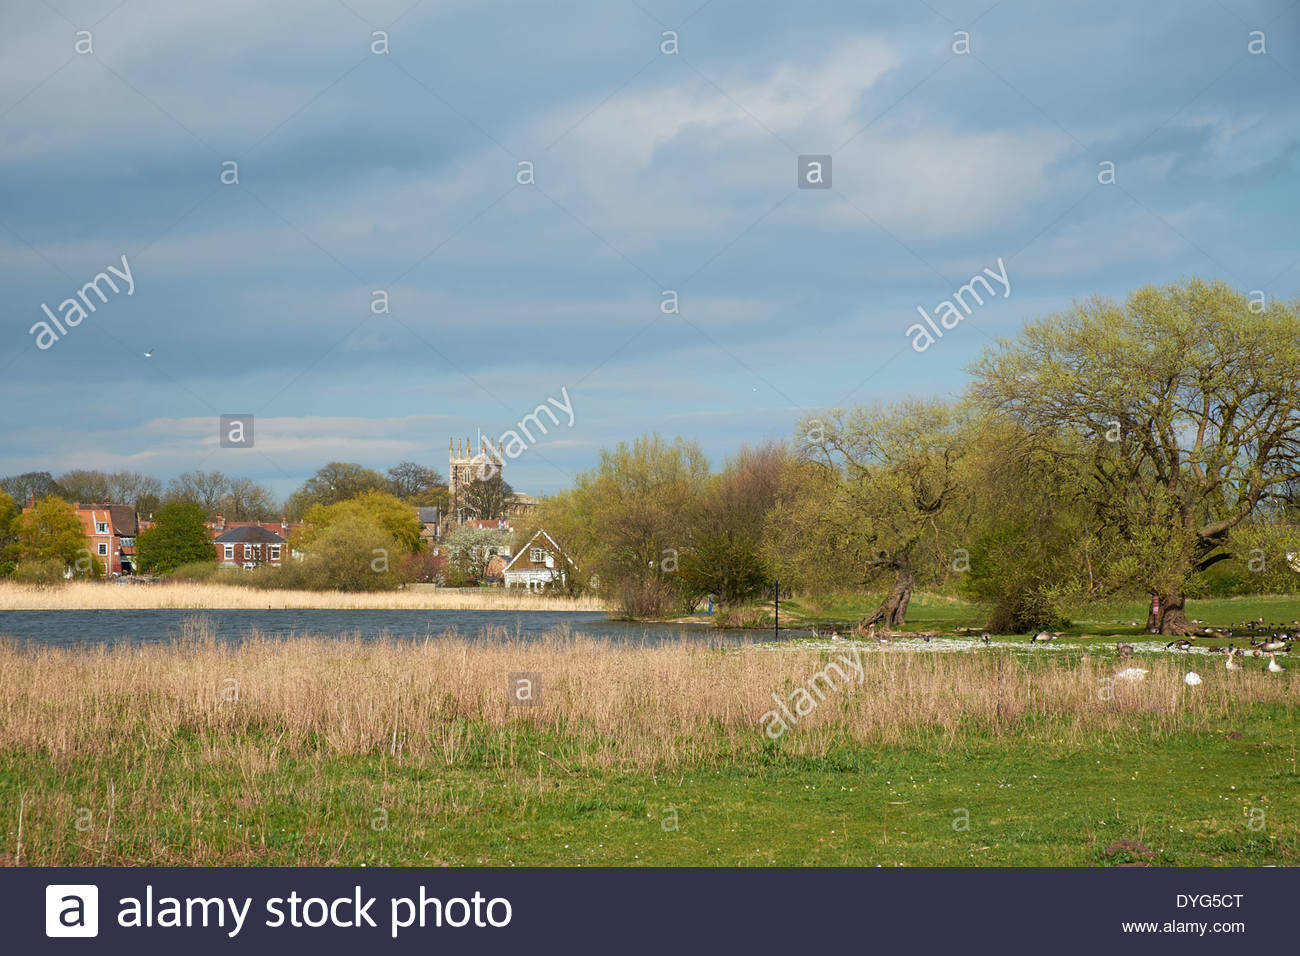 Hornsea Mere, largest natural freshwater lake in Yorkshire looking towards the town and Saint Nicholas church tower. Hornsea - Stock Image